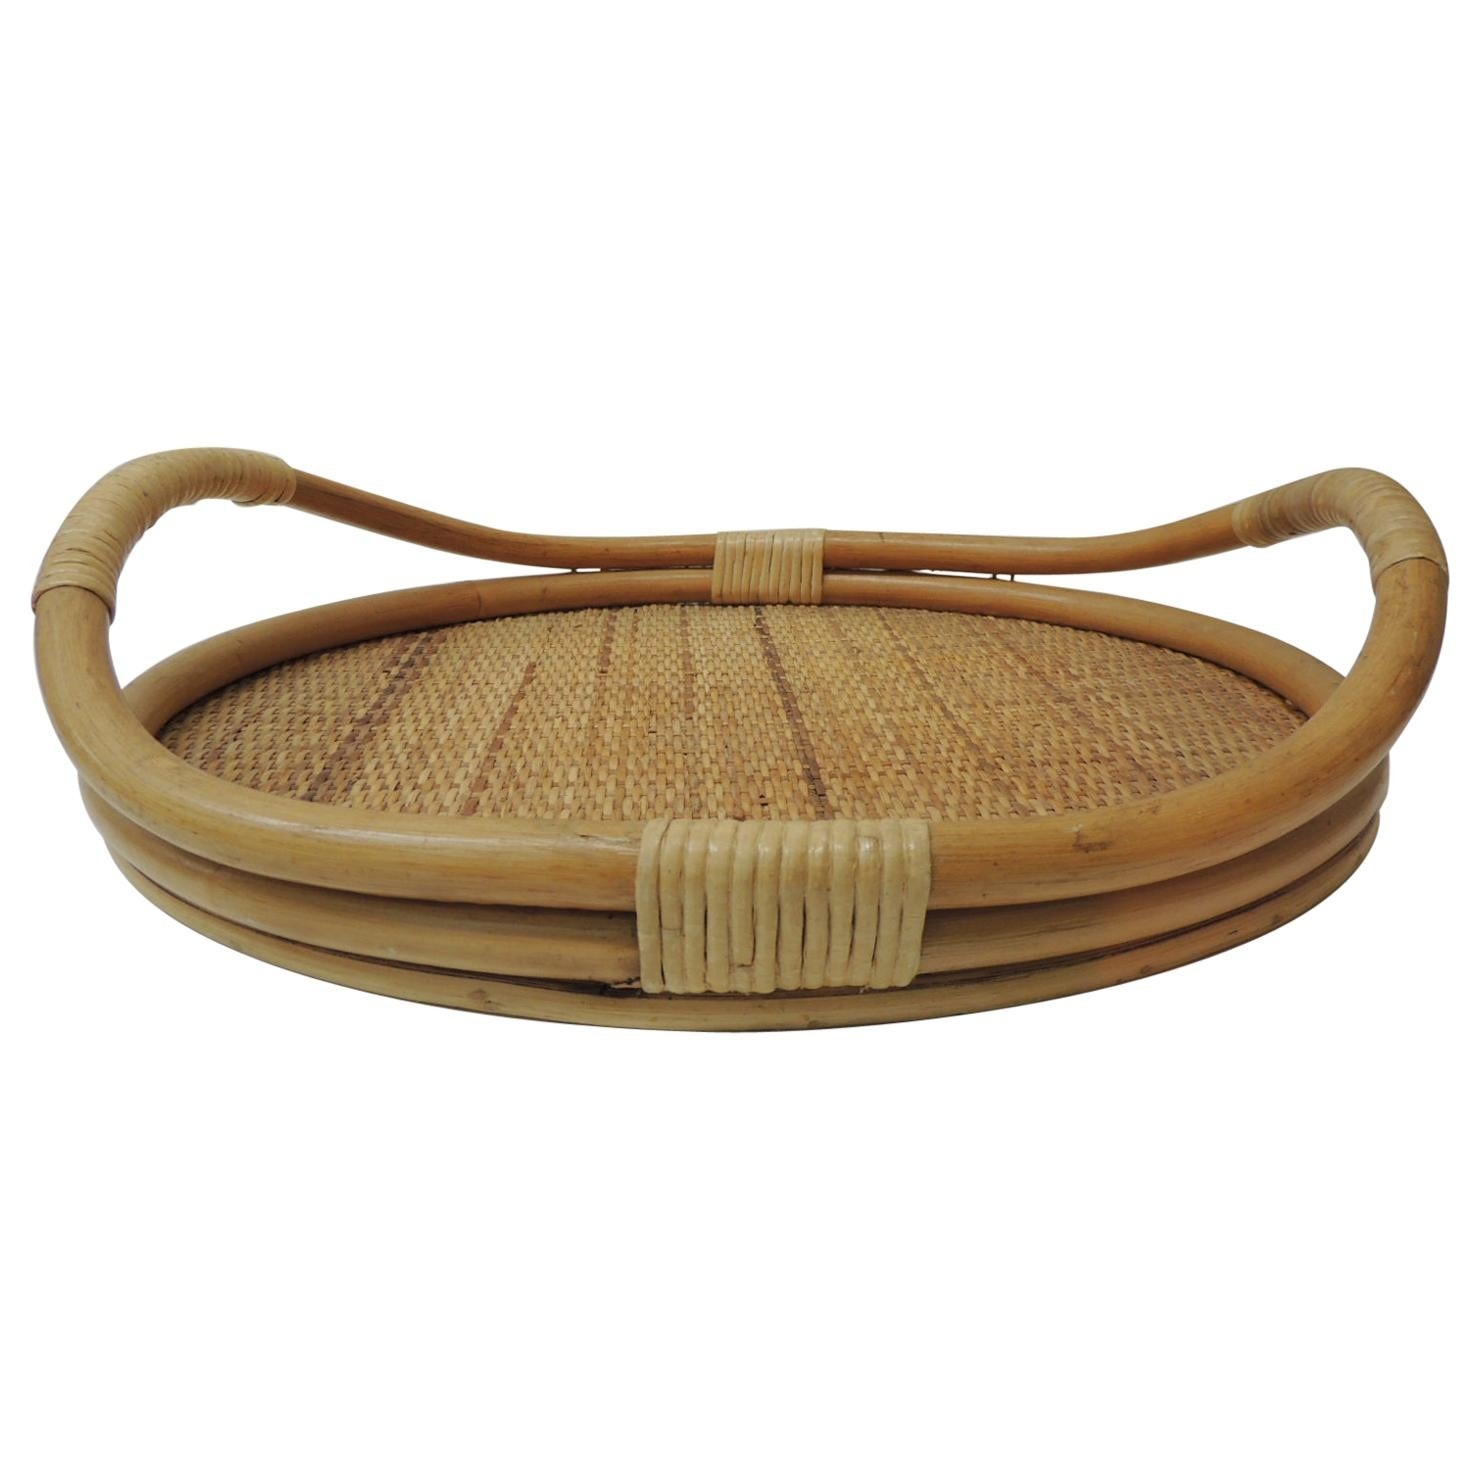 Vintage Oval Shape Bamboo and Rattan Serving Tray